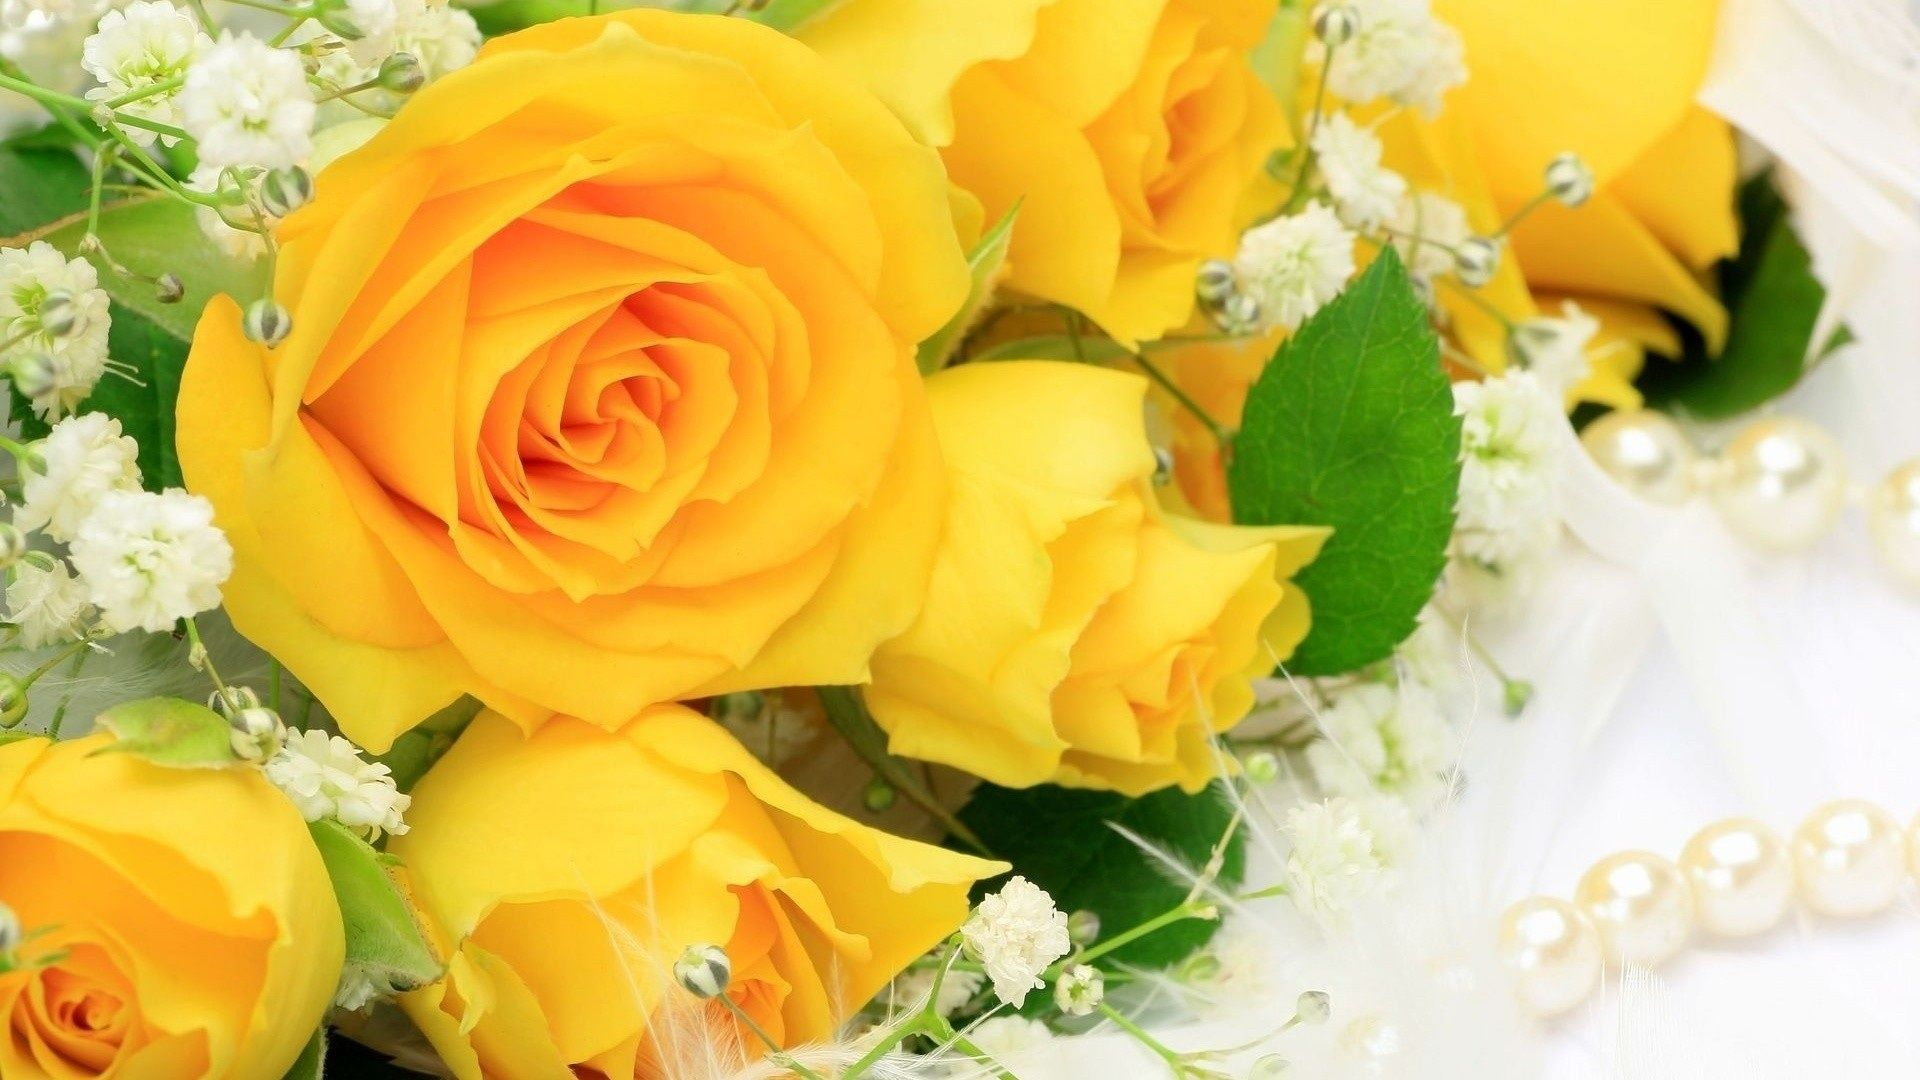 Rose Wallpapers For Desktop Full Size Hq Pictures 13 Hd Wallpapers Yellow Rose Bouquet Yellow Roses Peach Colored Roses